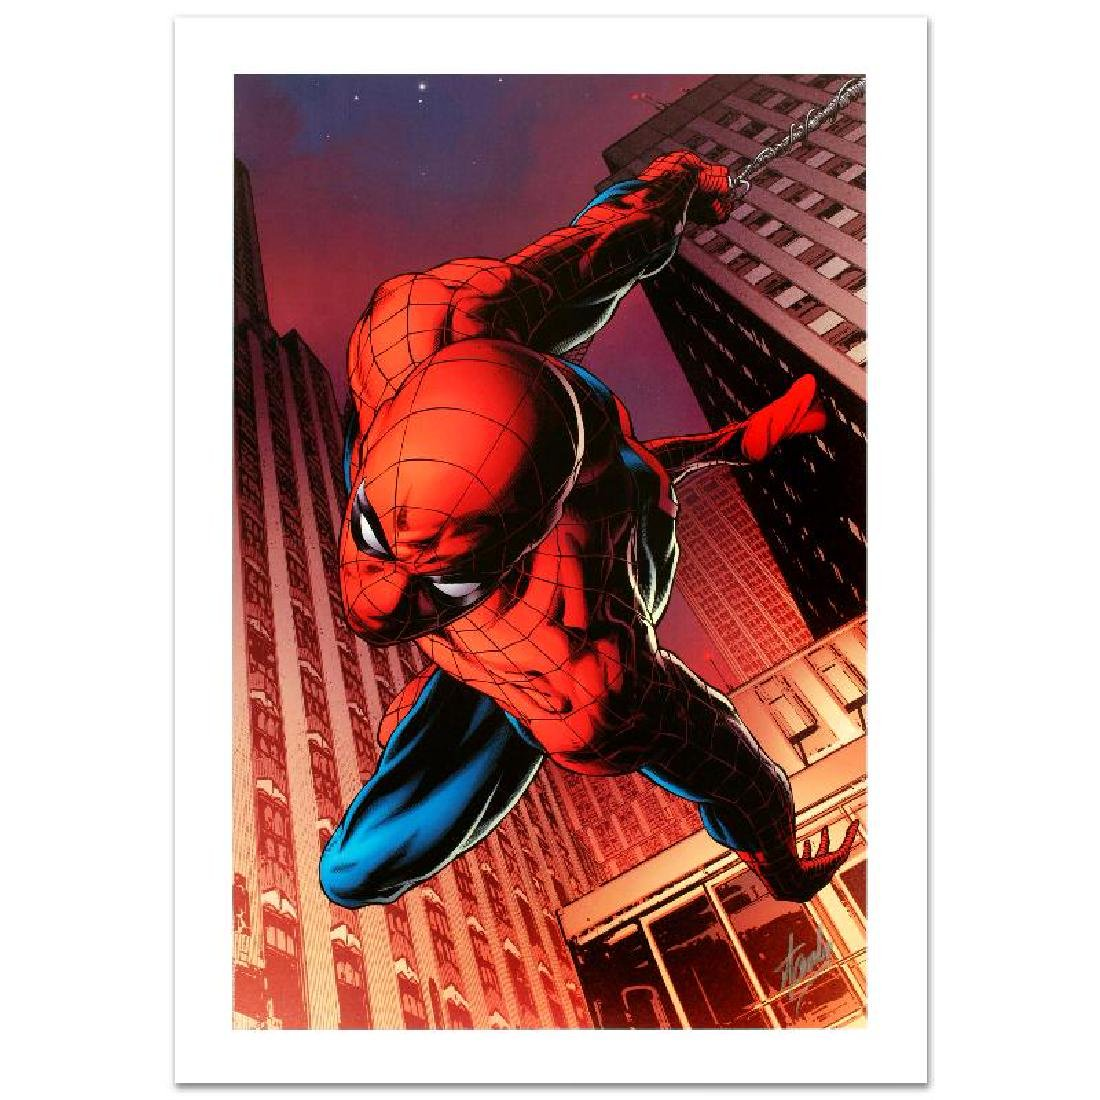 Amazing Spider-Man #641 by Stan Lee - Marvel Comics